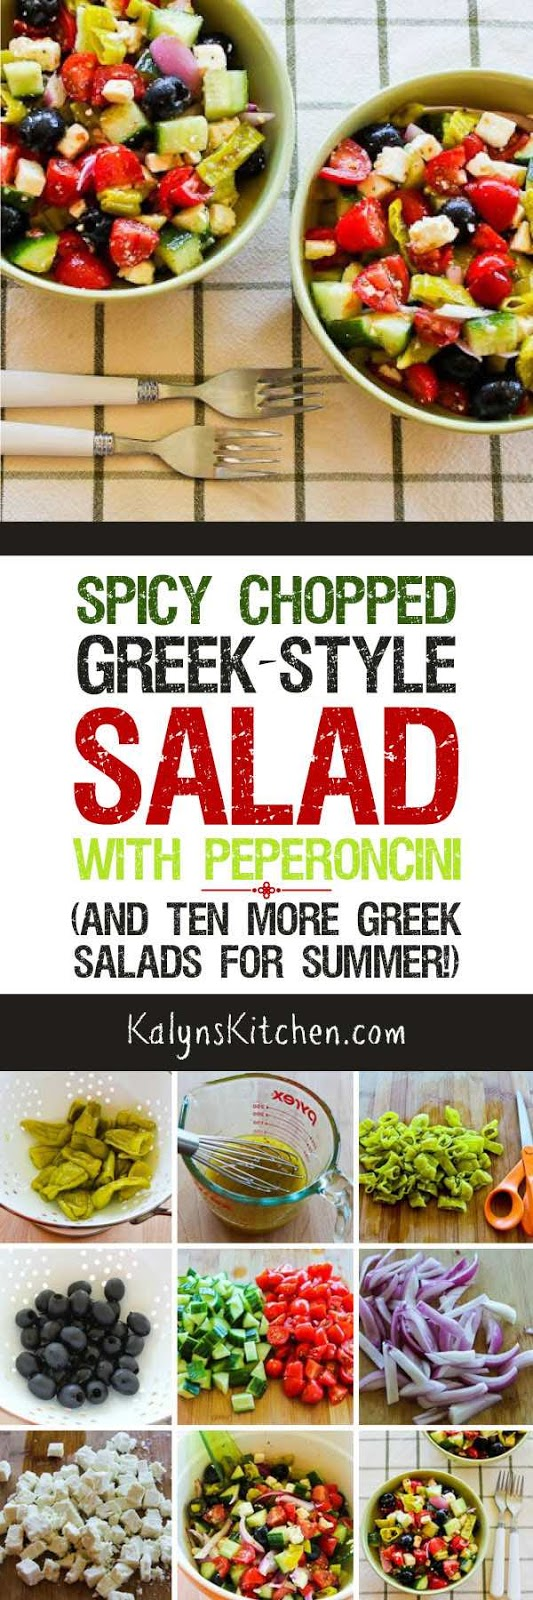 Spicy Chopped Greek-Style Salad with Peperoncini (and Ten ...